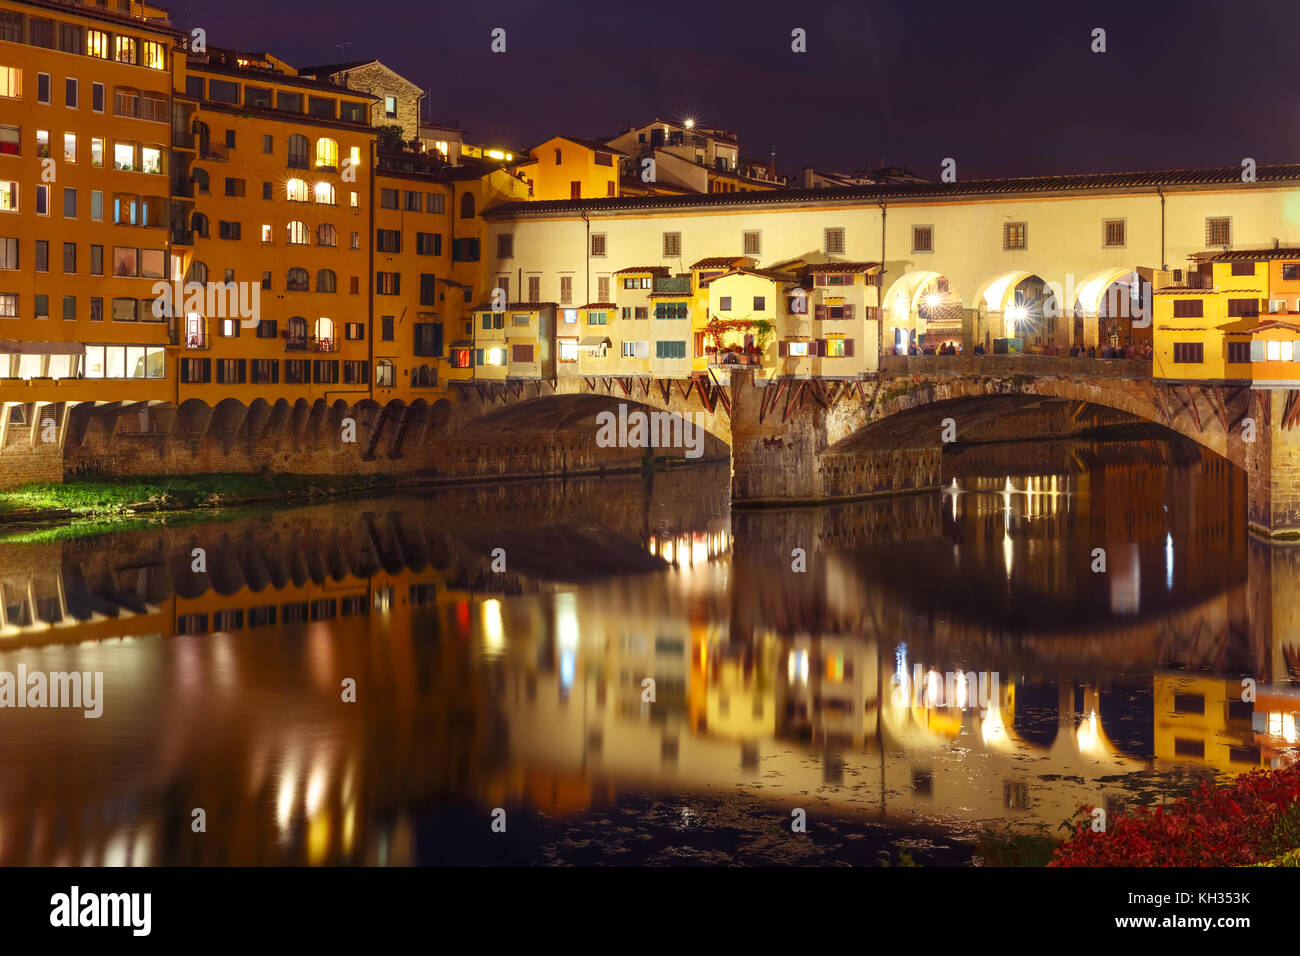 River Arno and Ponte Vecchio in Florence, Italy - Stock Image